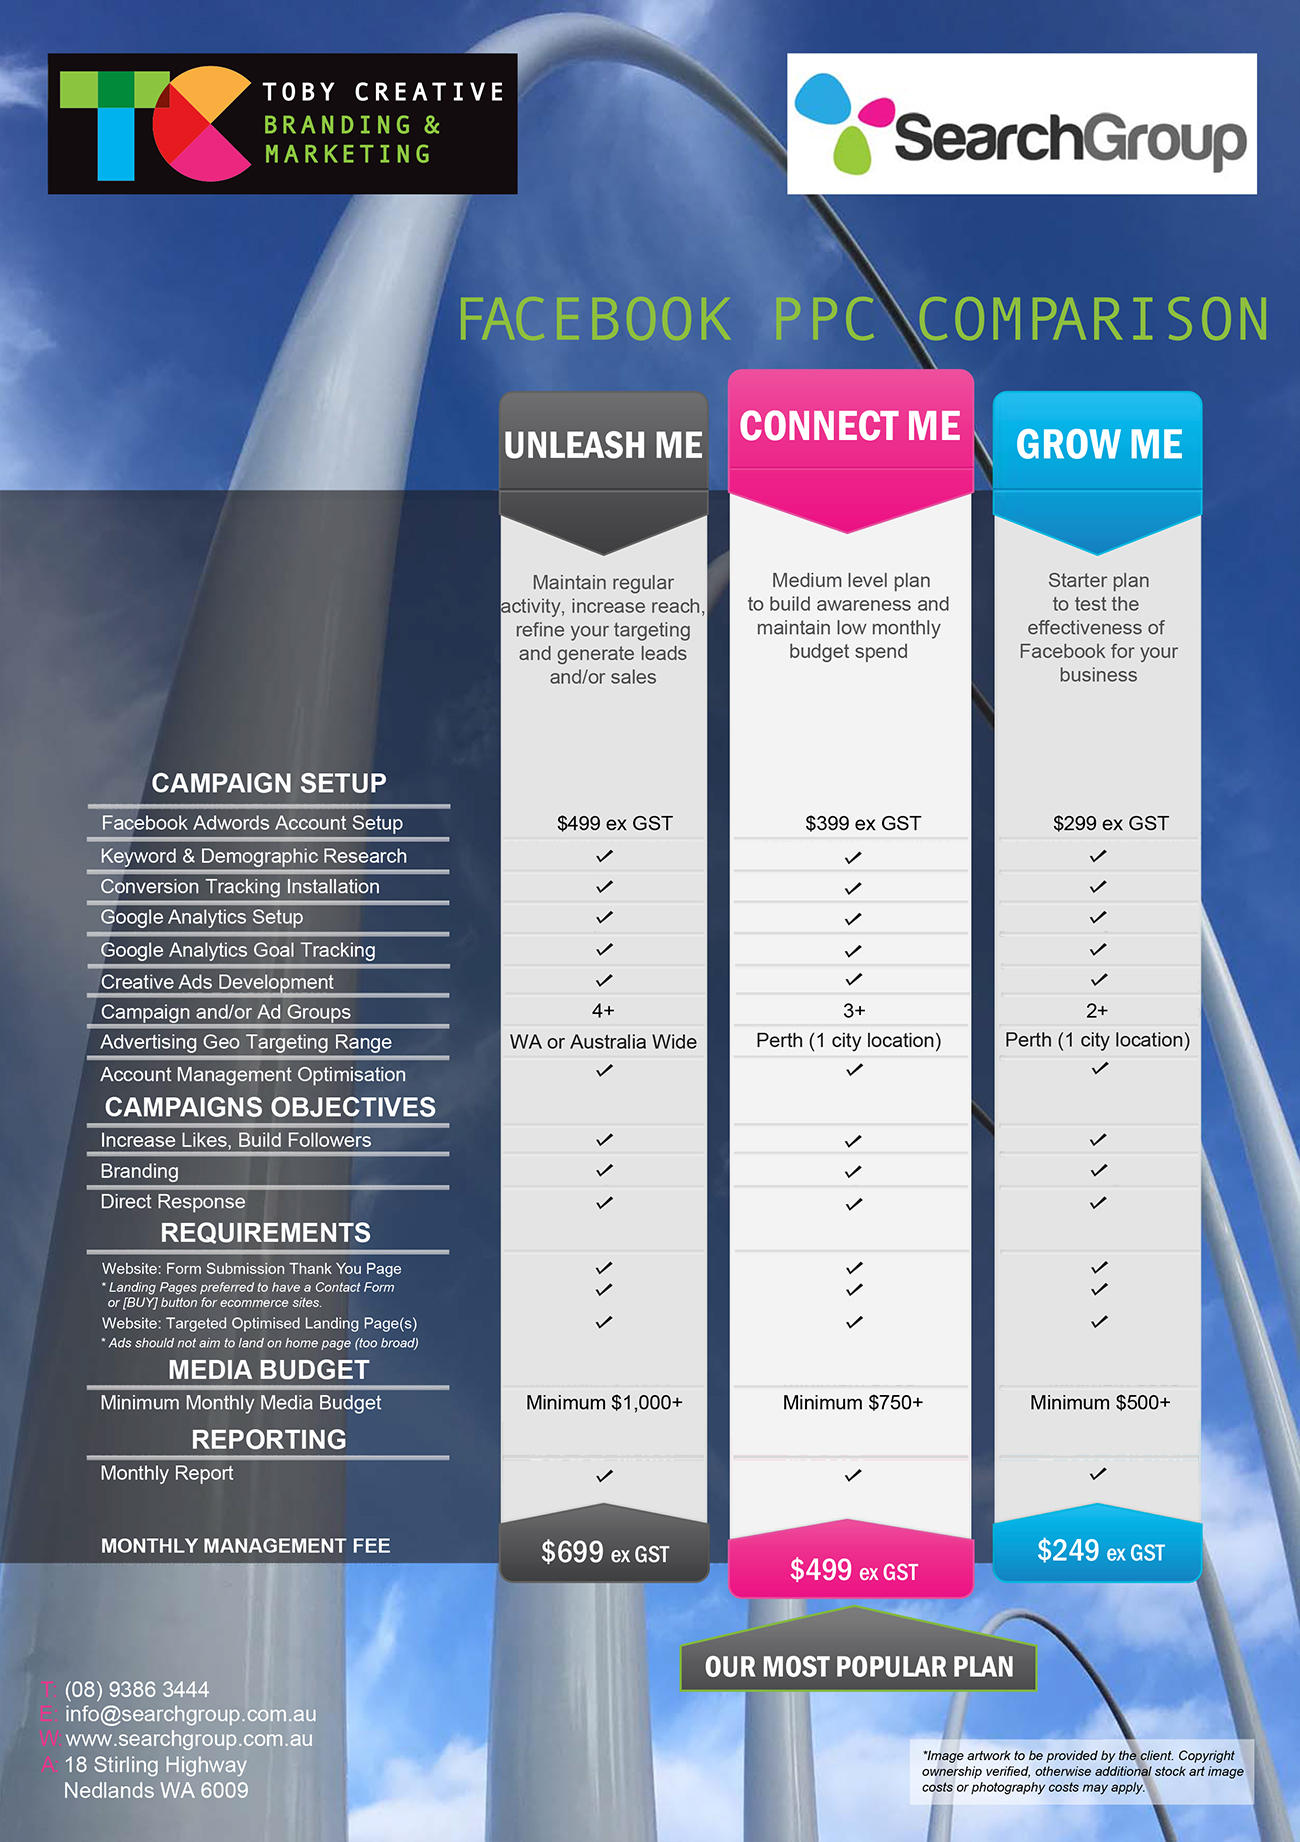 Toby Creative – Perth Social Media Marketing PPC (Pay-Per-Click) Facebook Advertising Comparison Plan